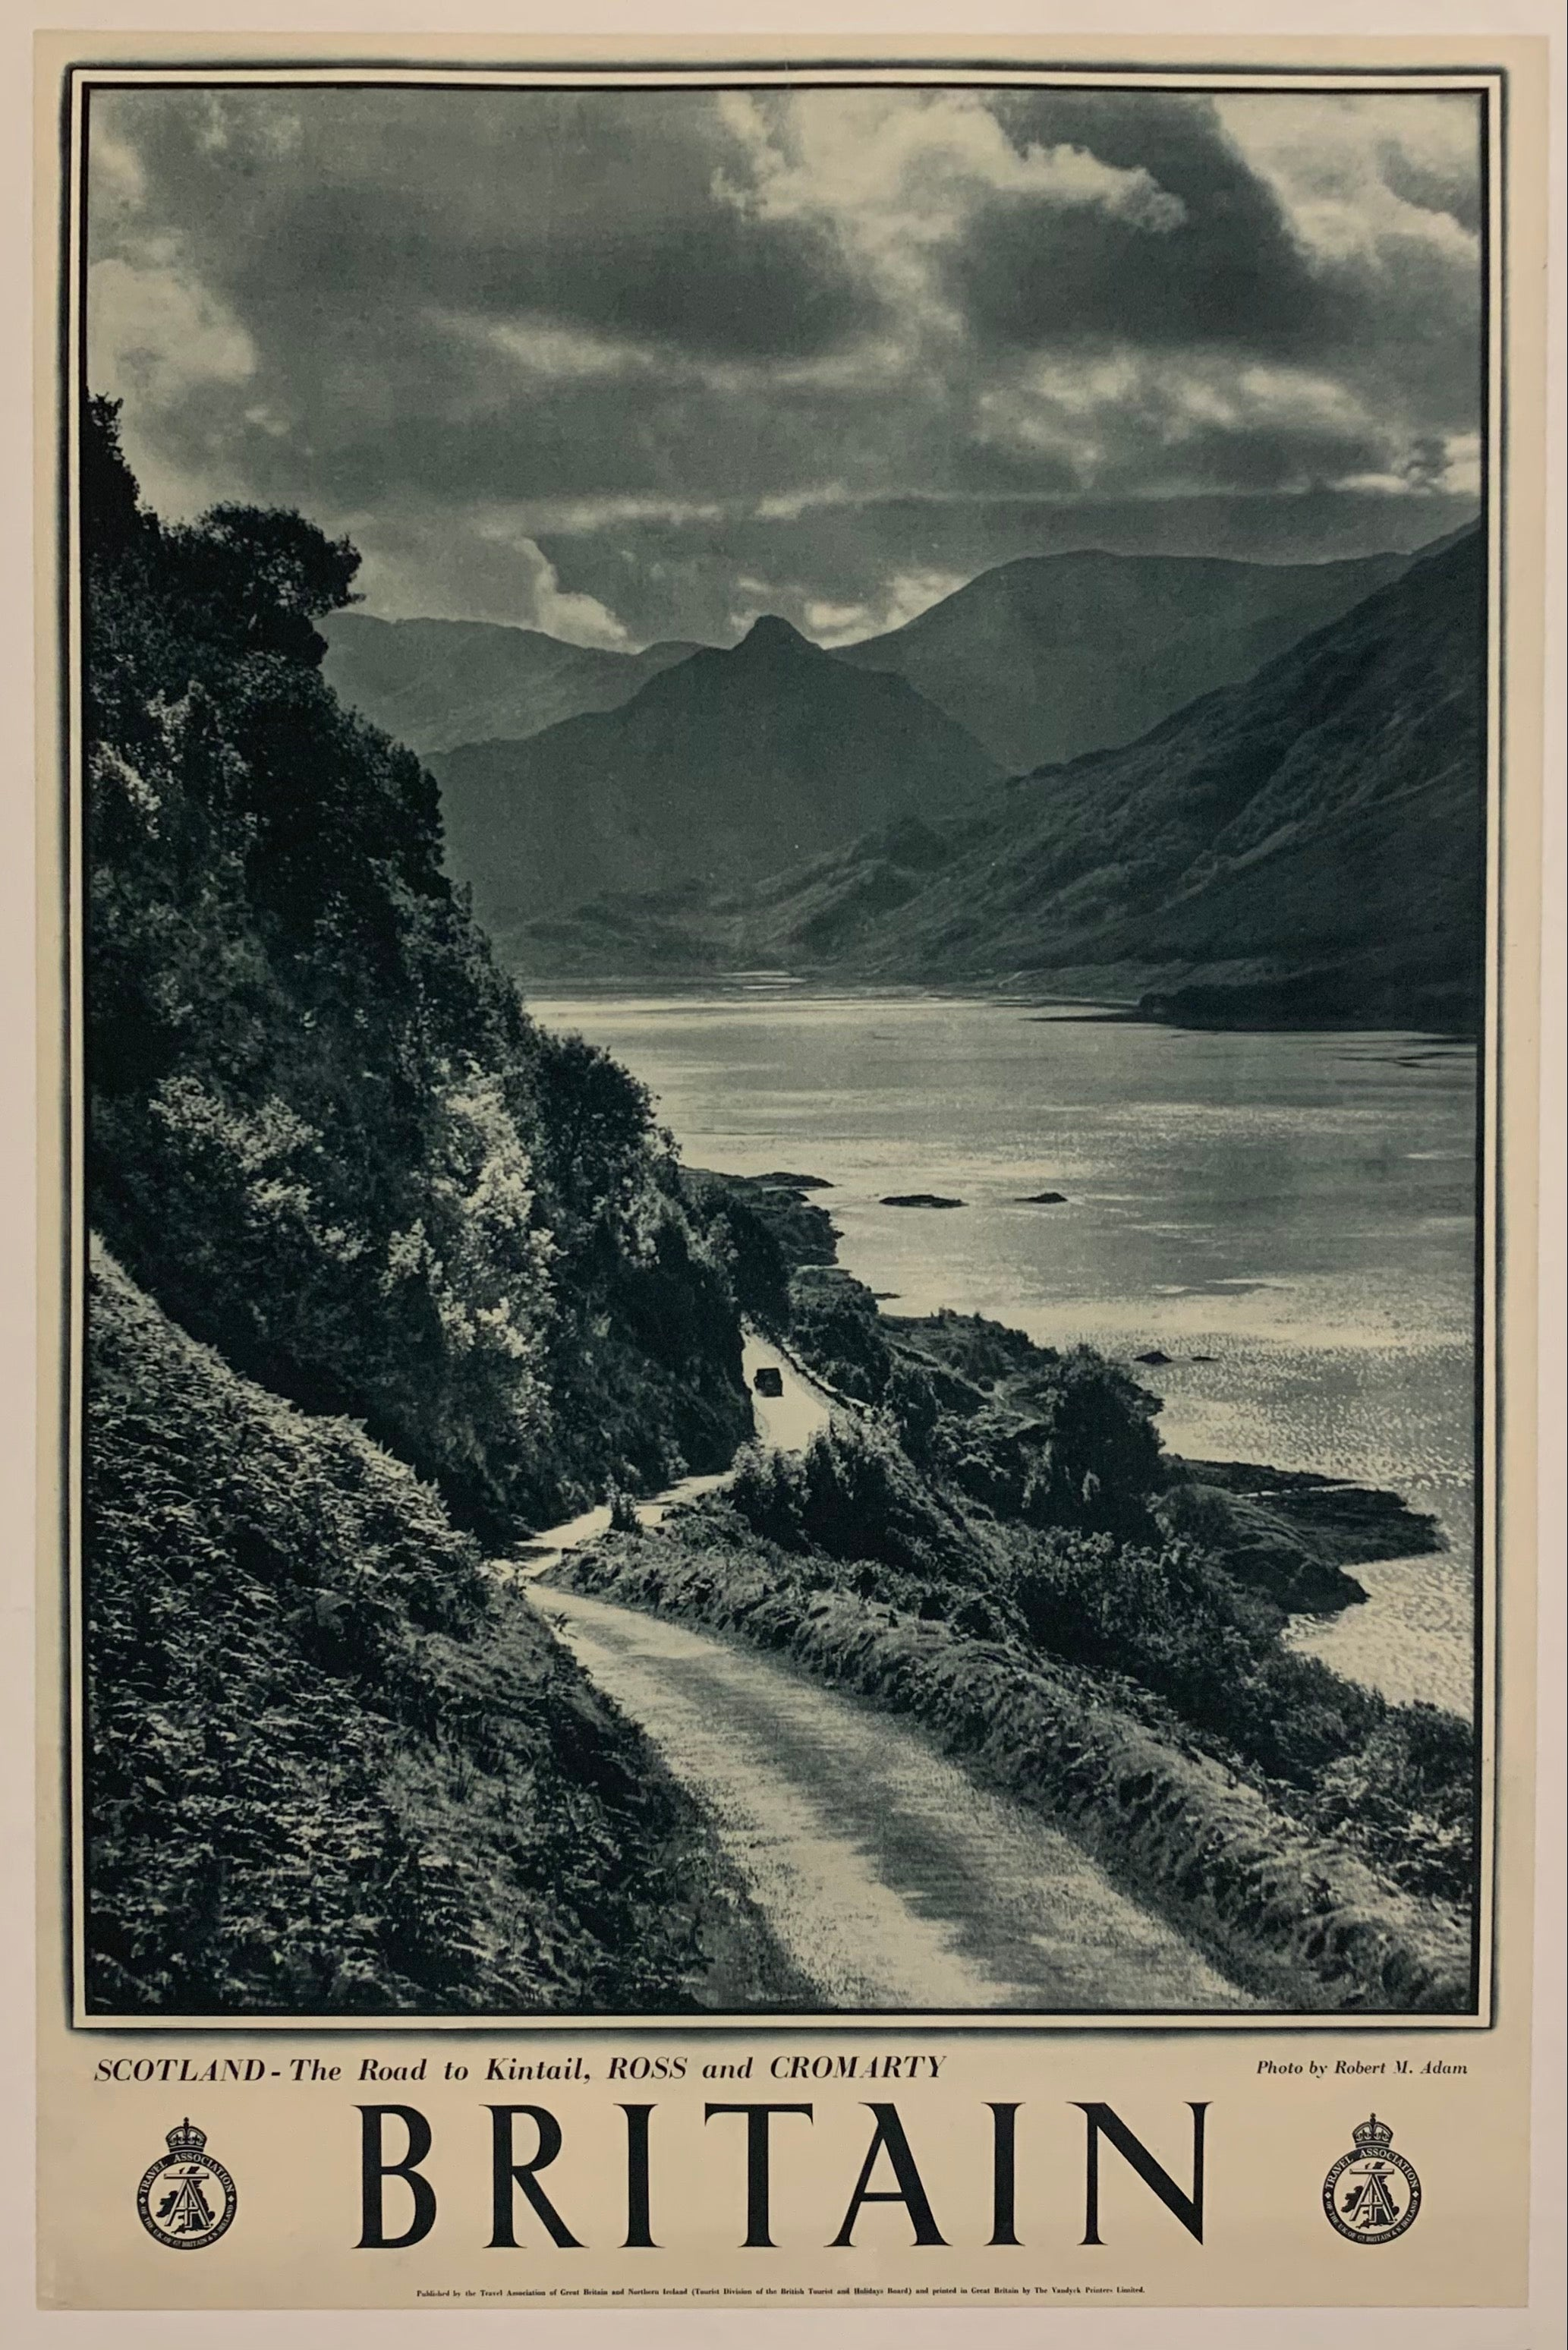 Britain- Scotland, the Road to Kintail, Ross and Cromarty